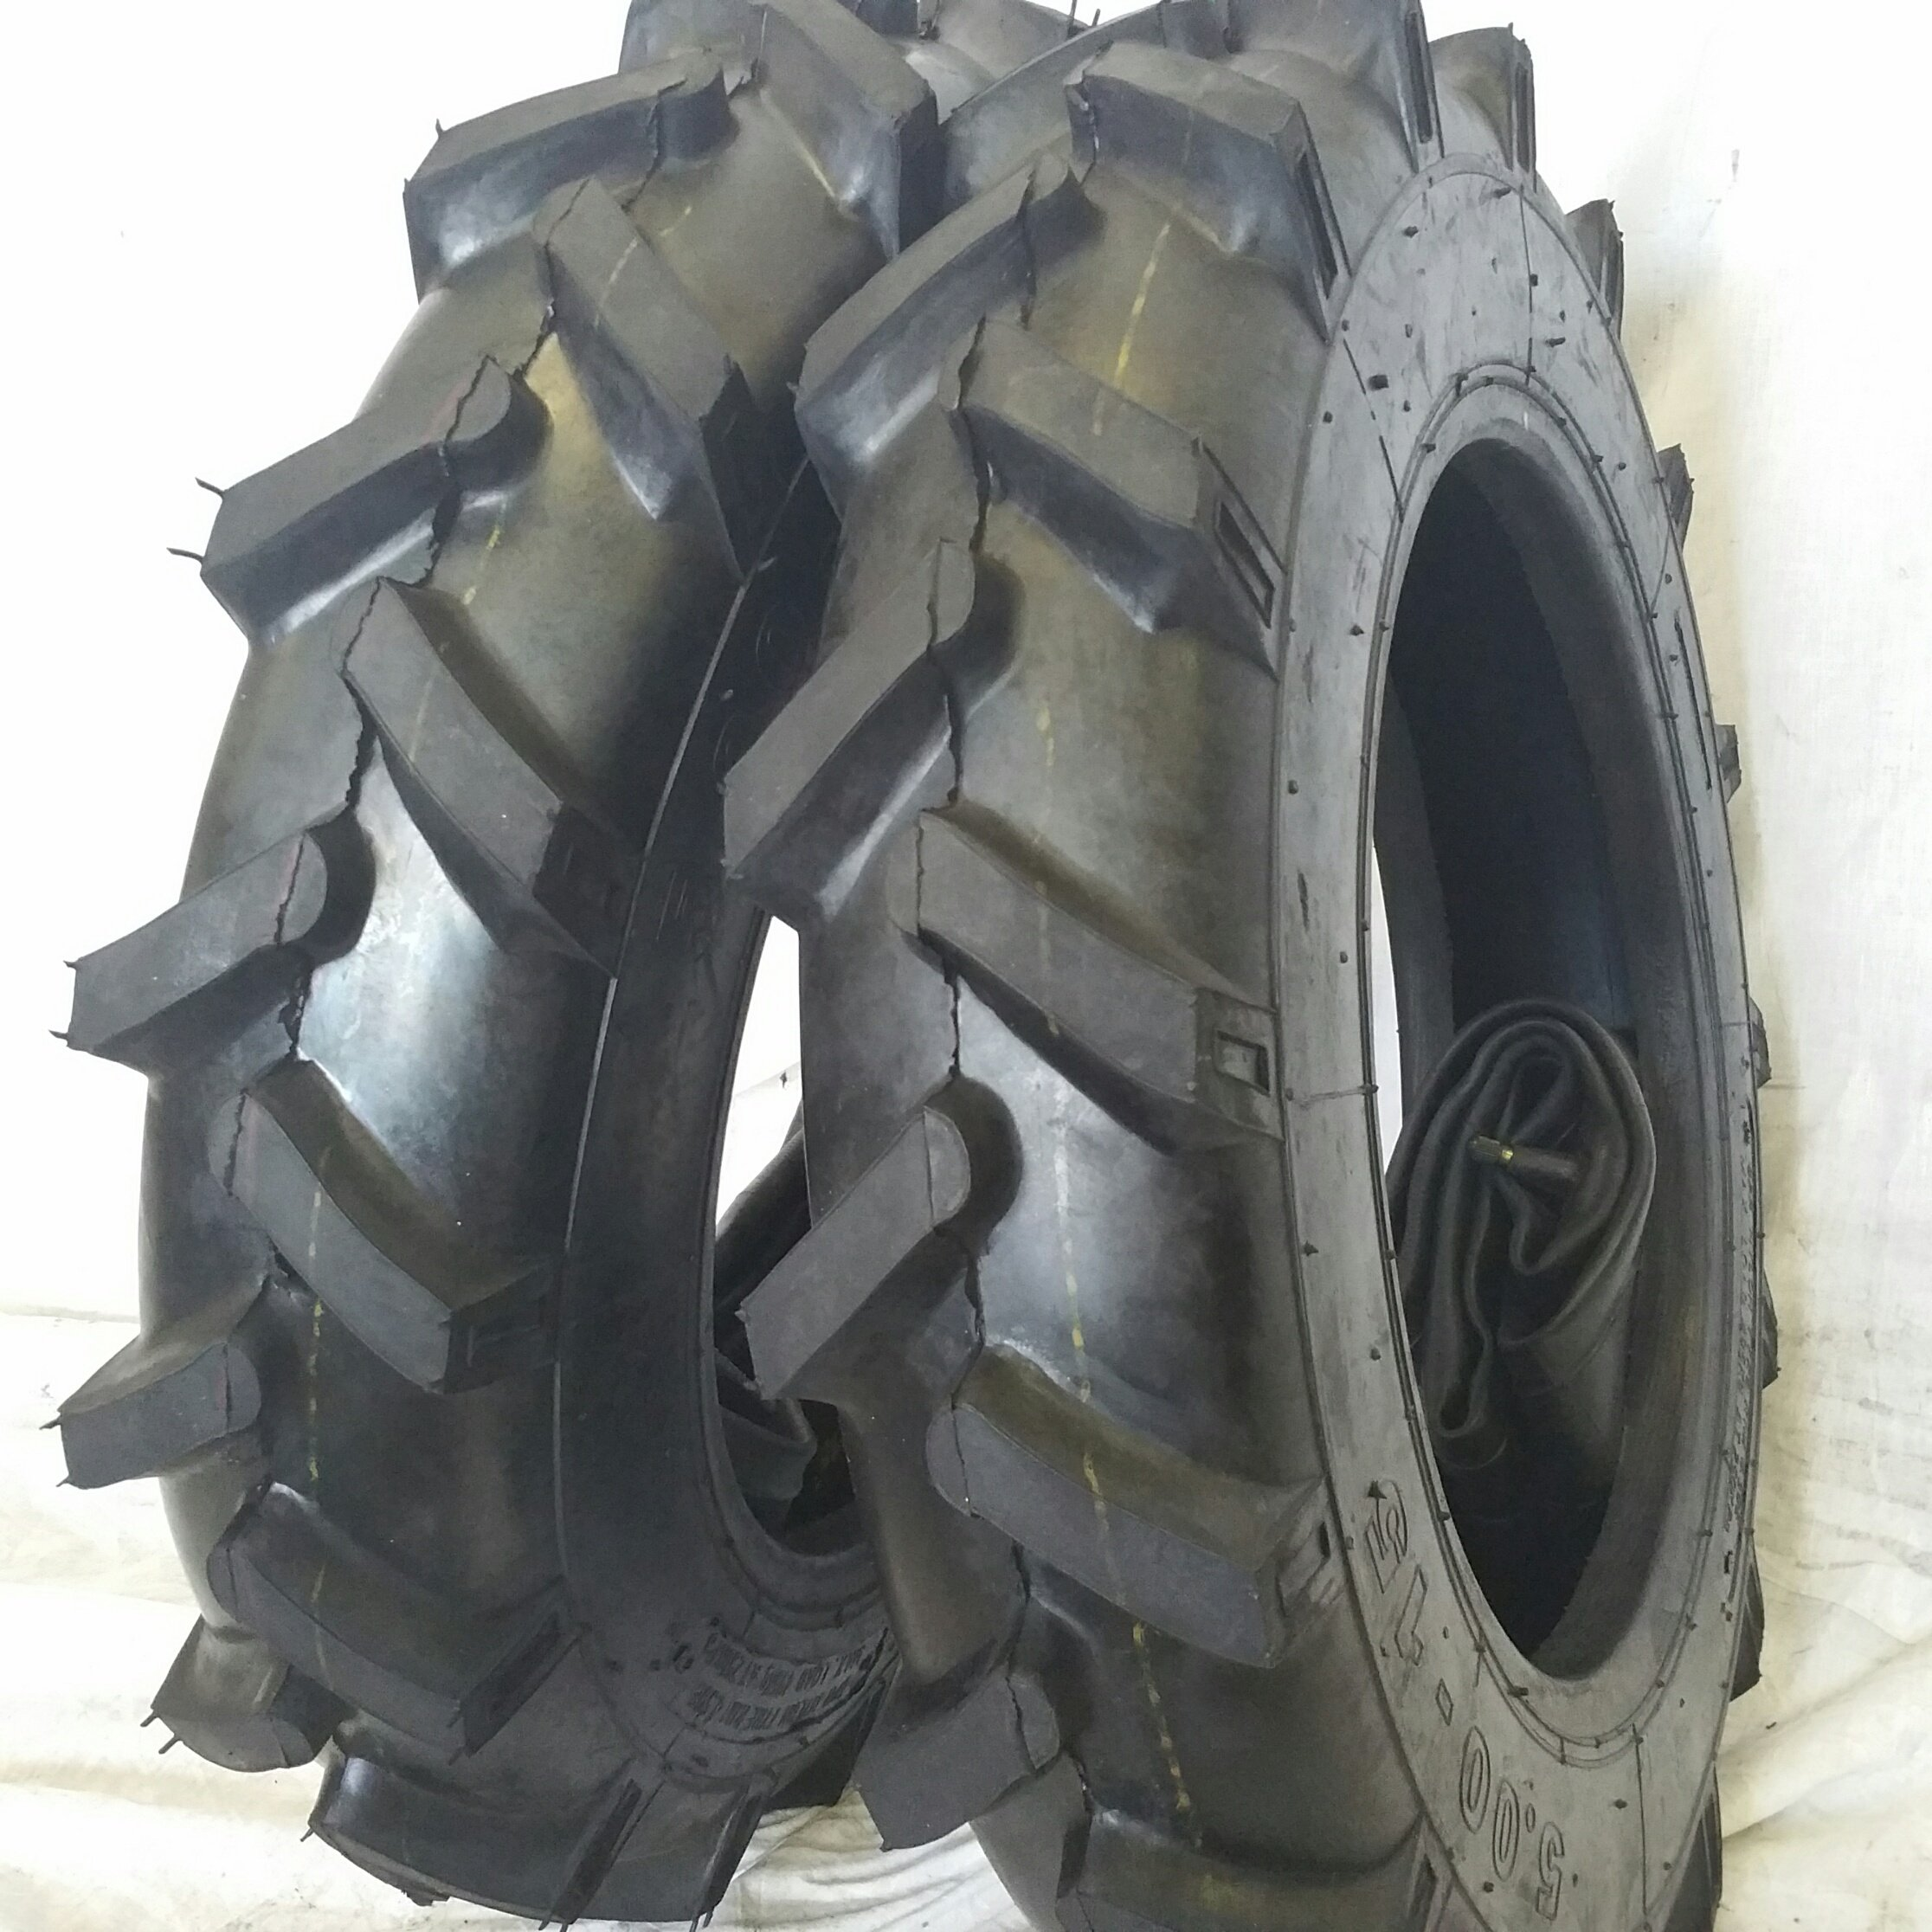 (2 TIRES + 2 TUBES) 6.00-16 8 PLY RW OZK KNK50 R1 Farm Tractor Tire 600168 by Road Warrior